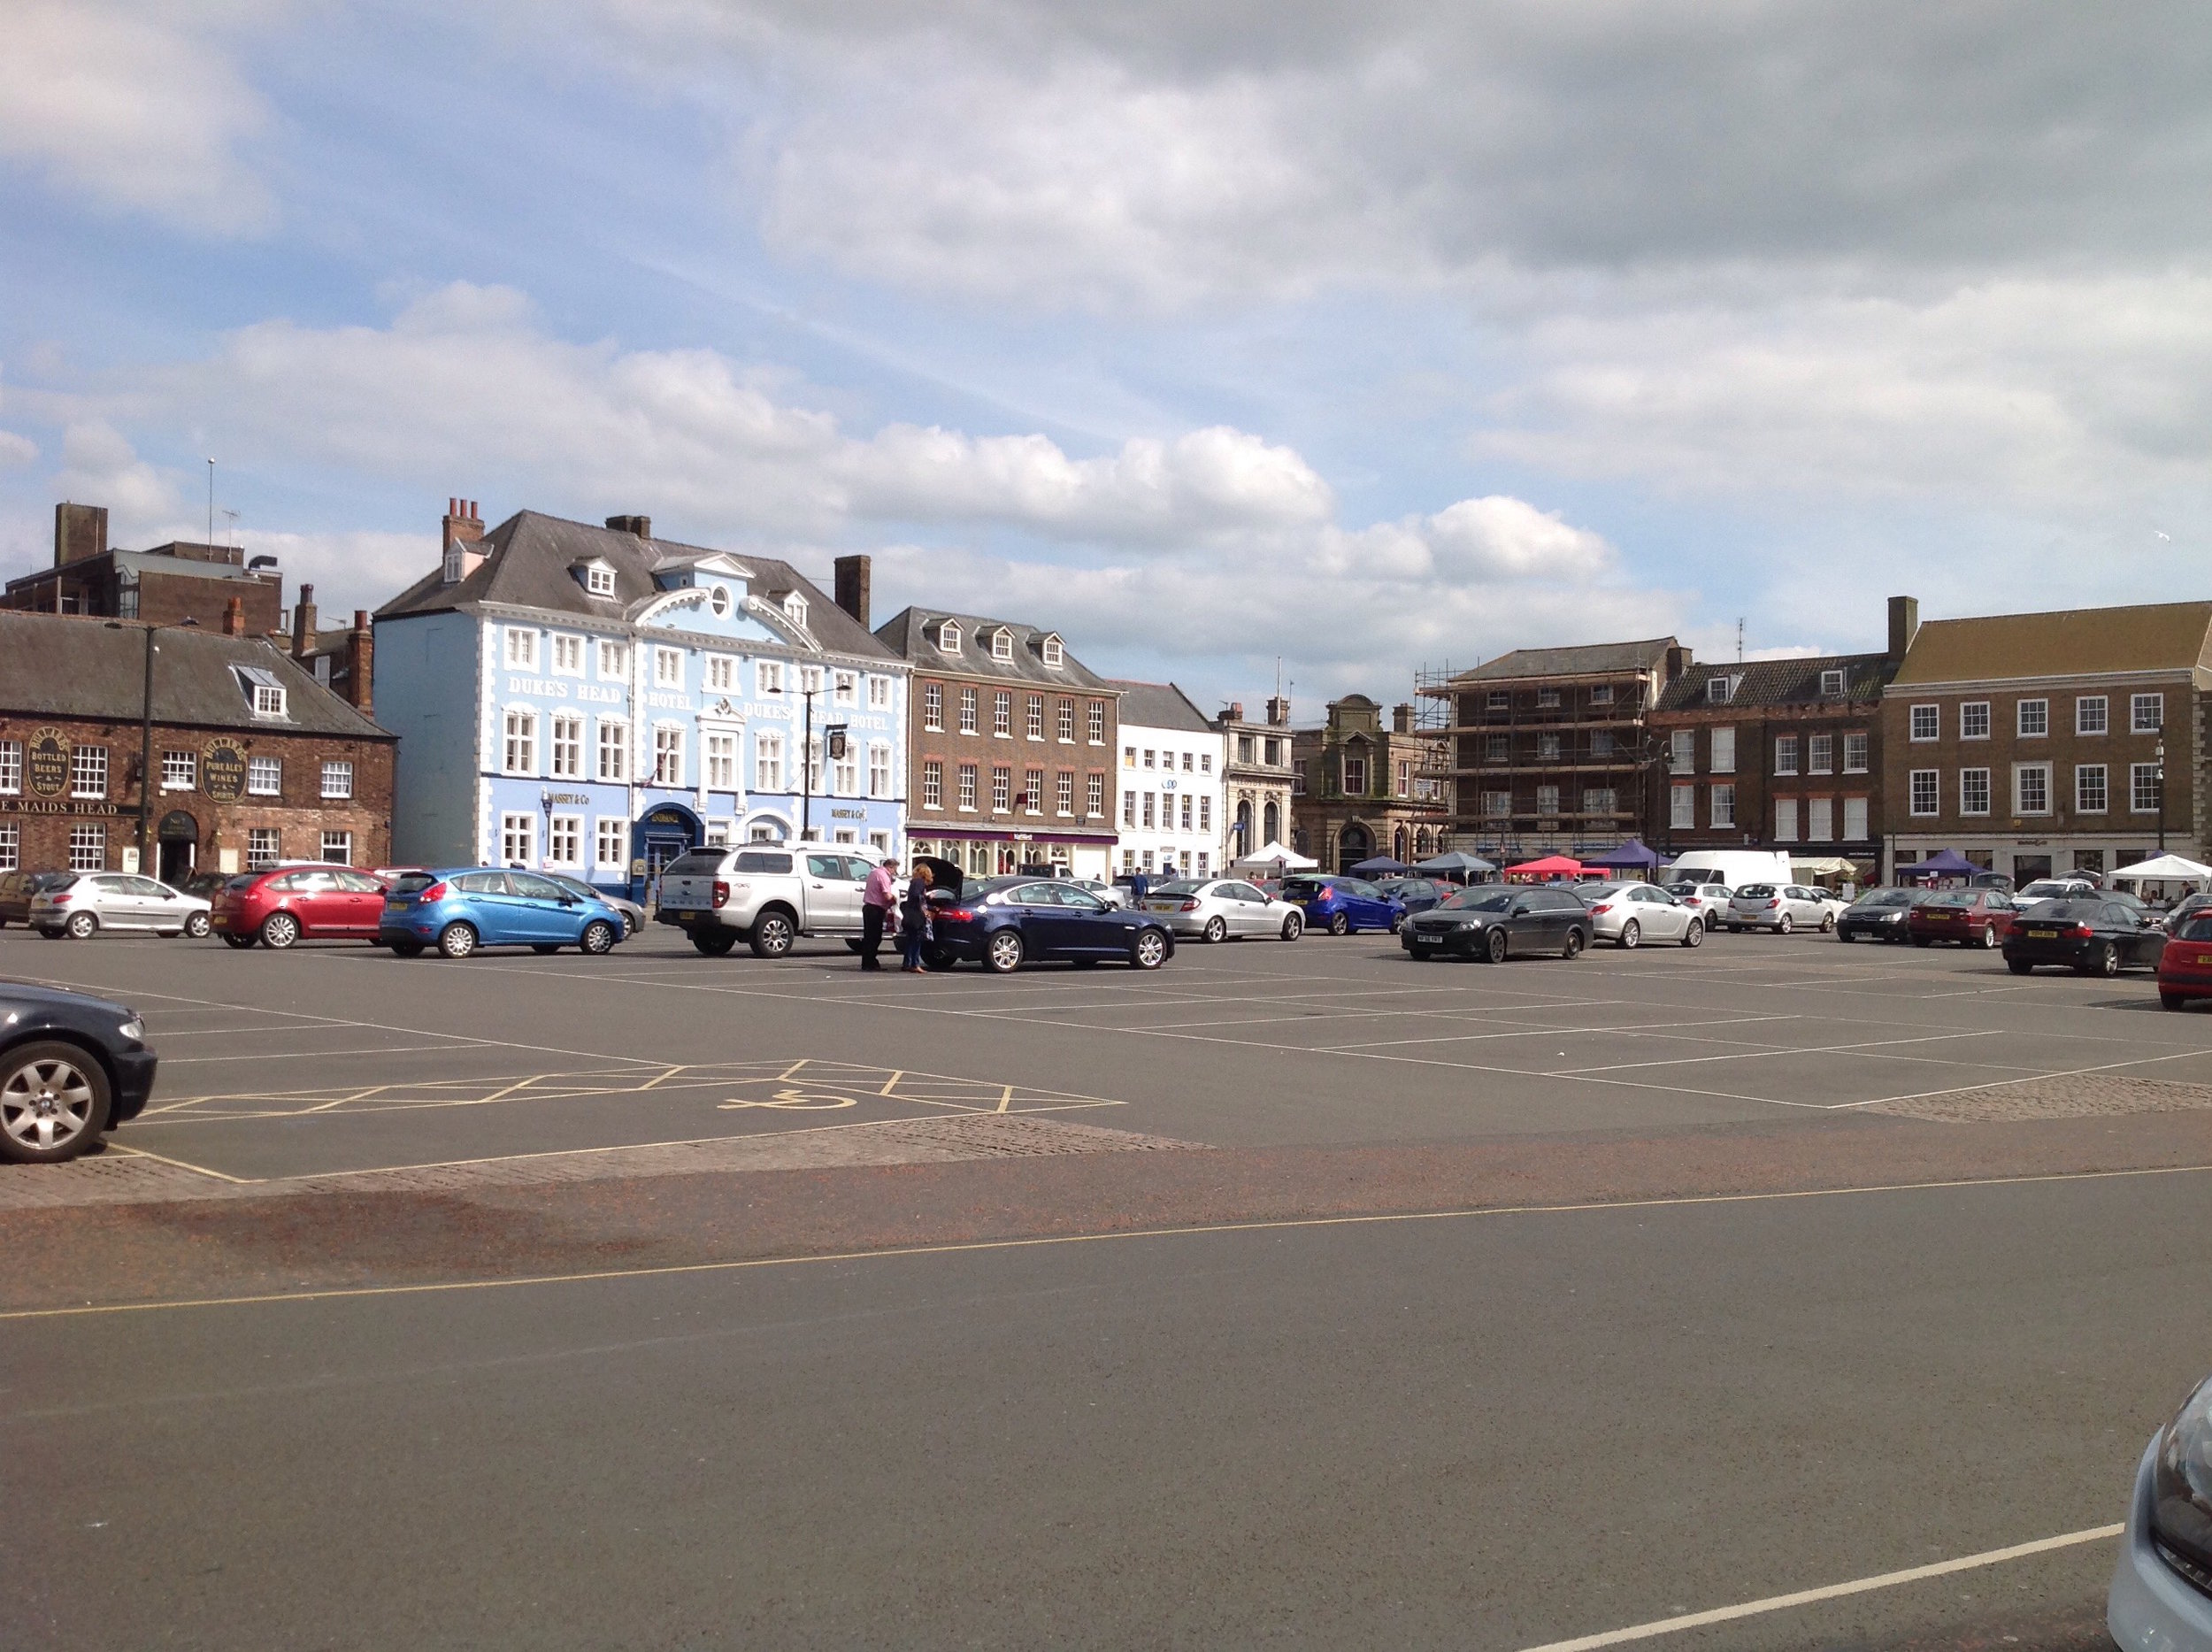 Tuesday Market Place looking towards the Duke's Head hotel. This area is now largely car park, with a few market stalls every Tuesday at the south end nearest to the high street.